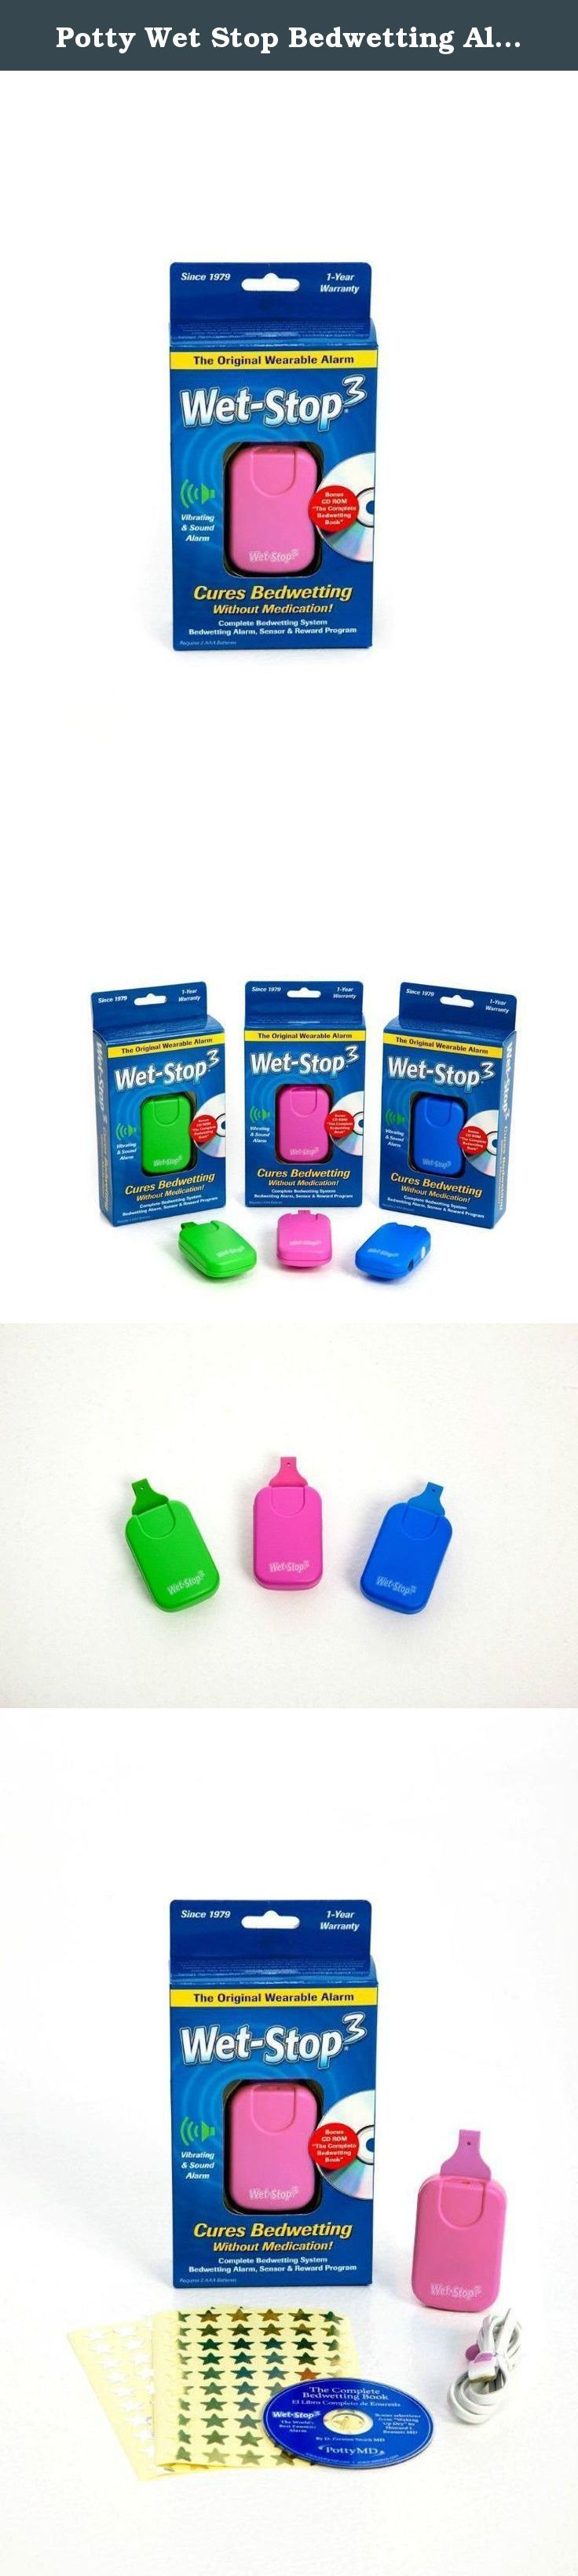 Colour therapy for digestion - Colour Therapy For Bedwetting Potty Wet Stop Bedwetting Alarm System Pink Wet Stop Bedwetting Alarm